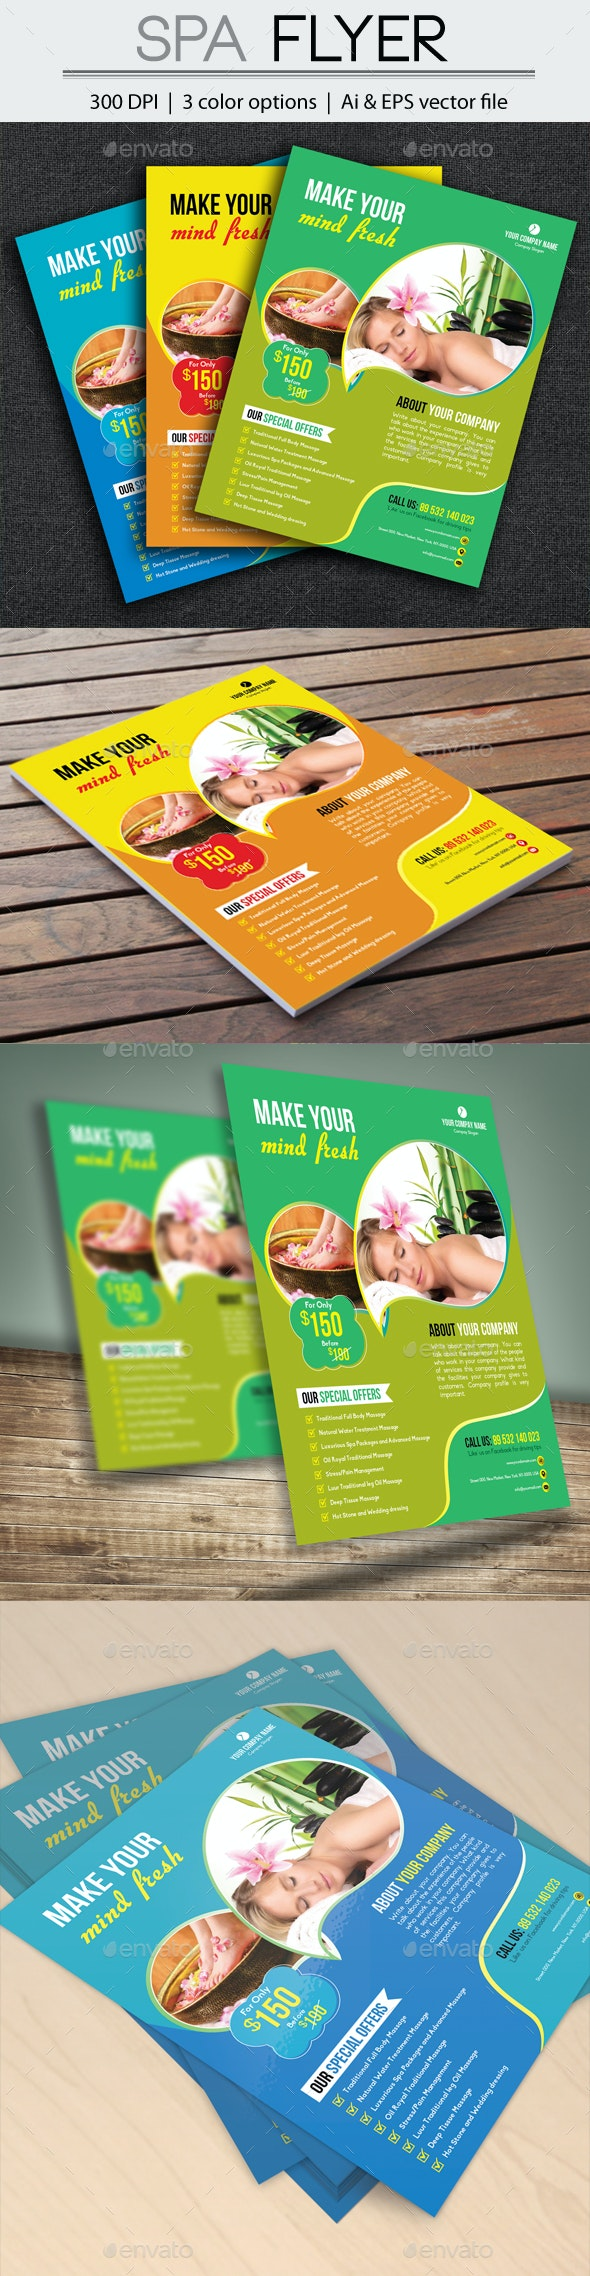 Spa Flyer - Flyers Print Templates